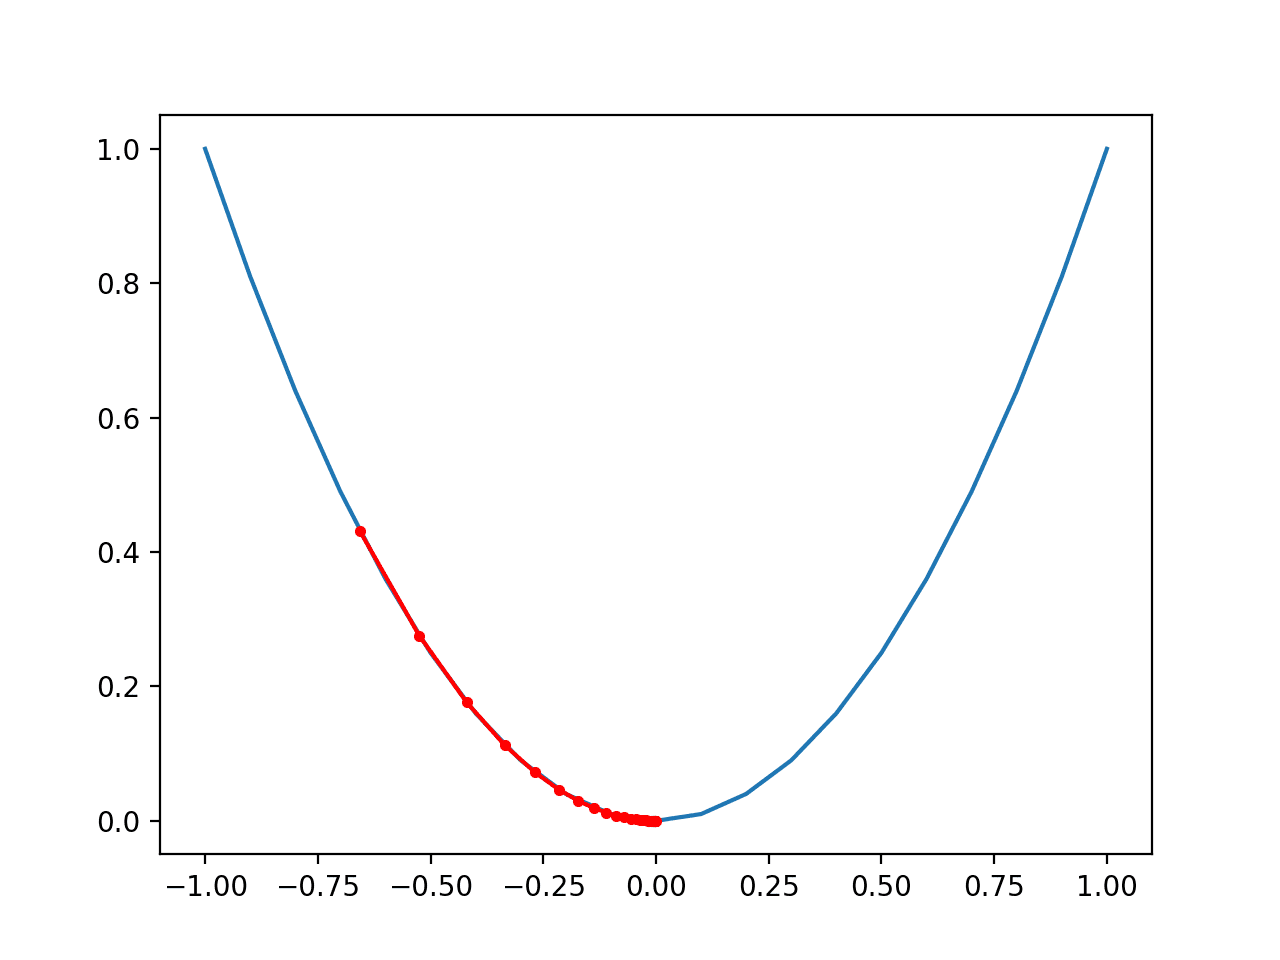 Plot of the Progress of Gradient Descent on a One Dimensional Objective Function